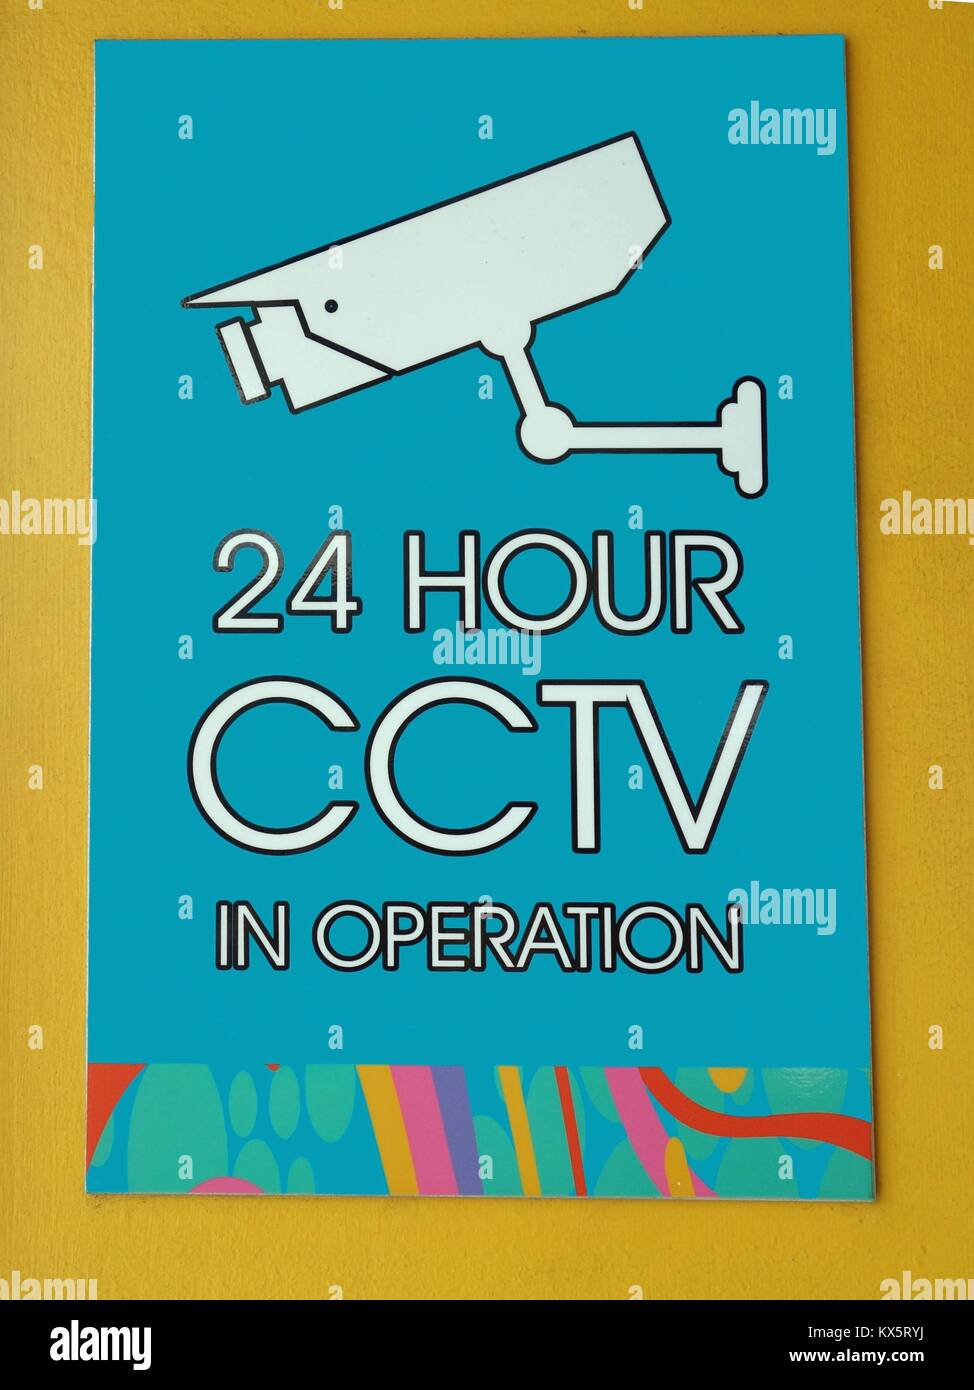 A sign warning that CCTV cameras are in operation 24 hours a day in this location - Stock Image